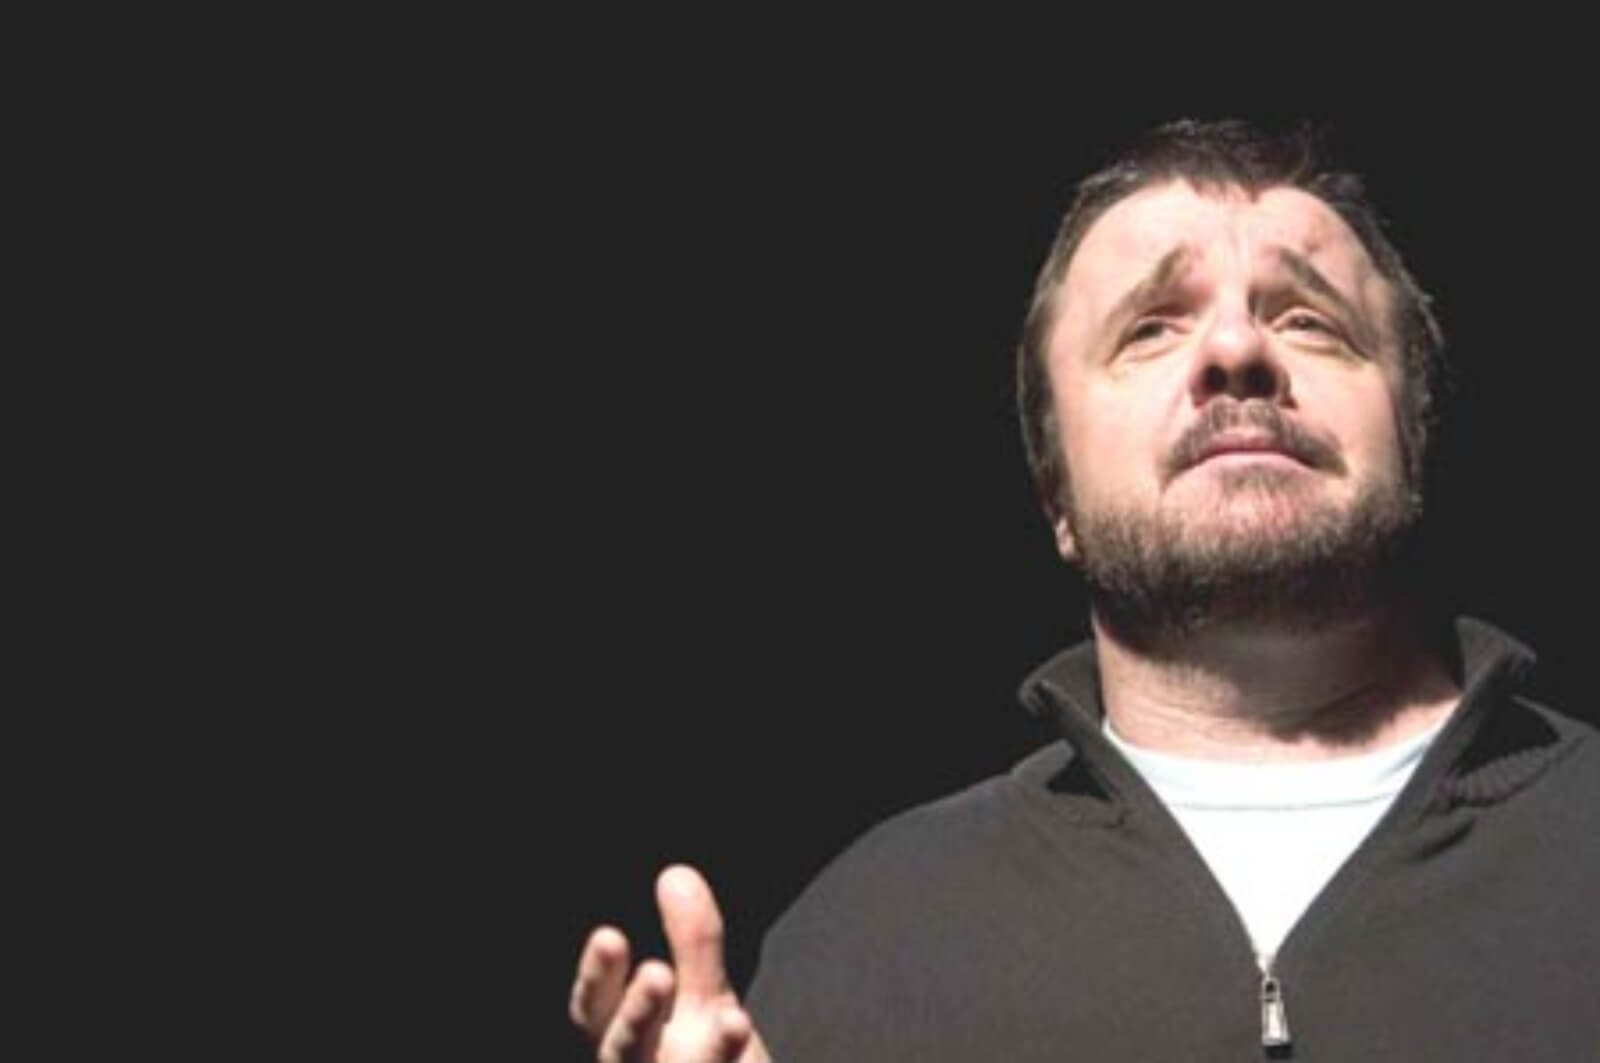 A close up Lou Nuncle (Nathan Lane) with an empathetic expression while performing in Dedication or the Stuff of Dreams